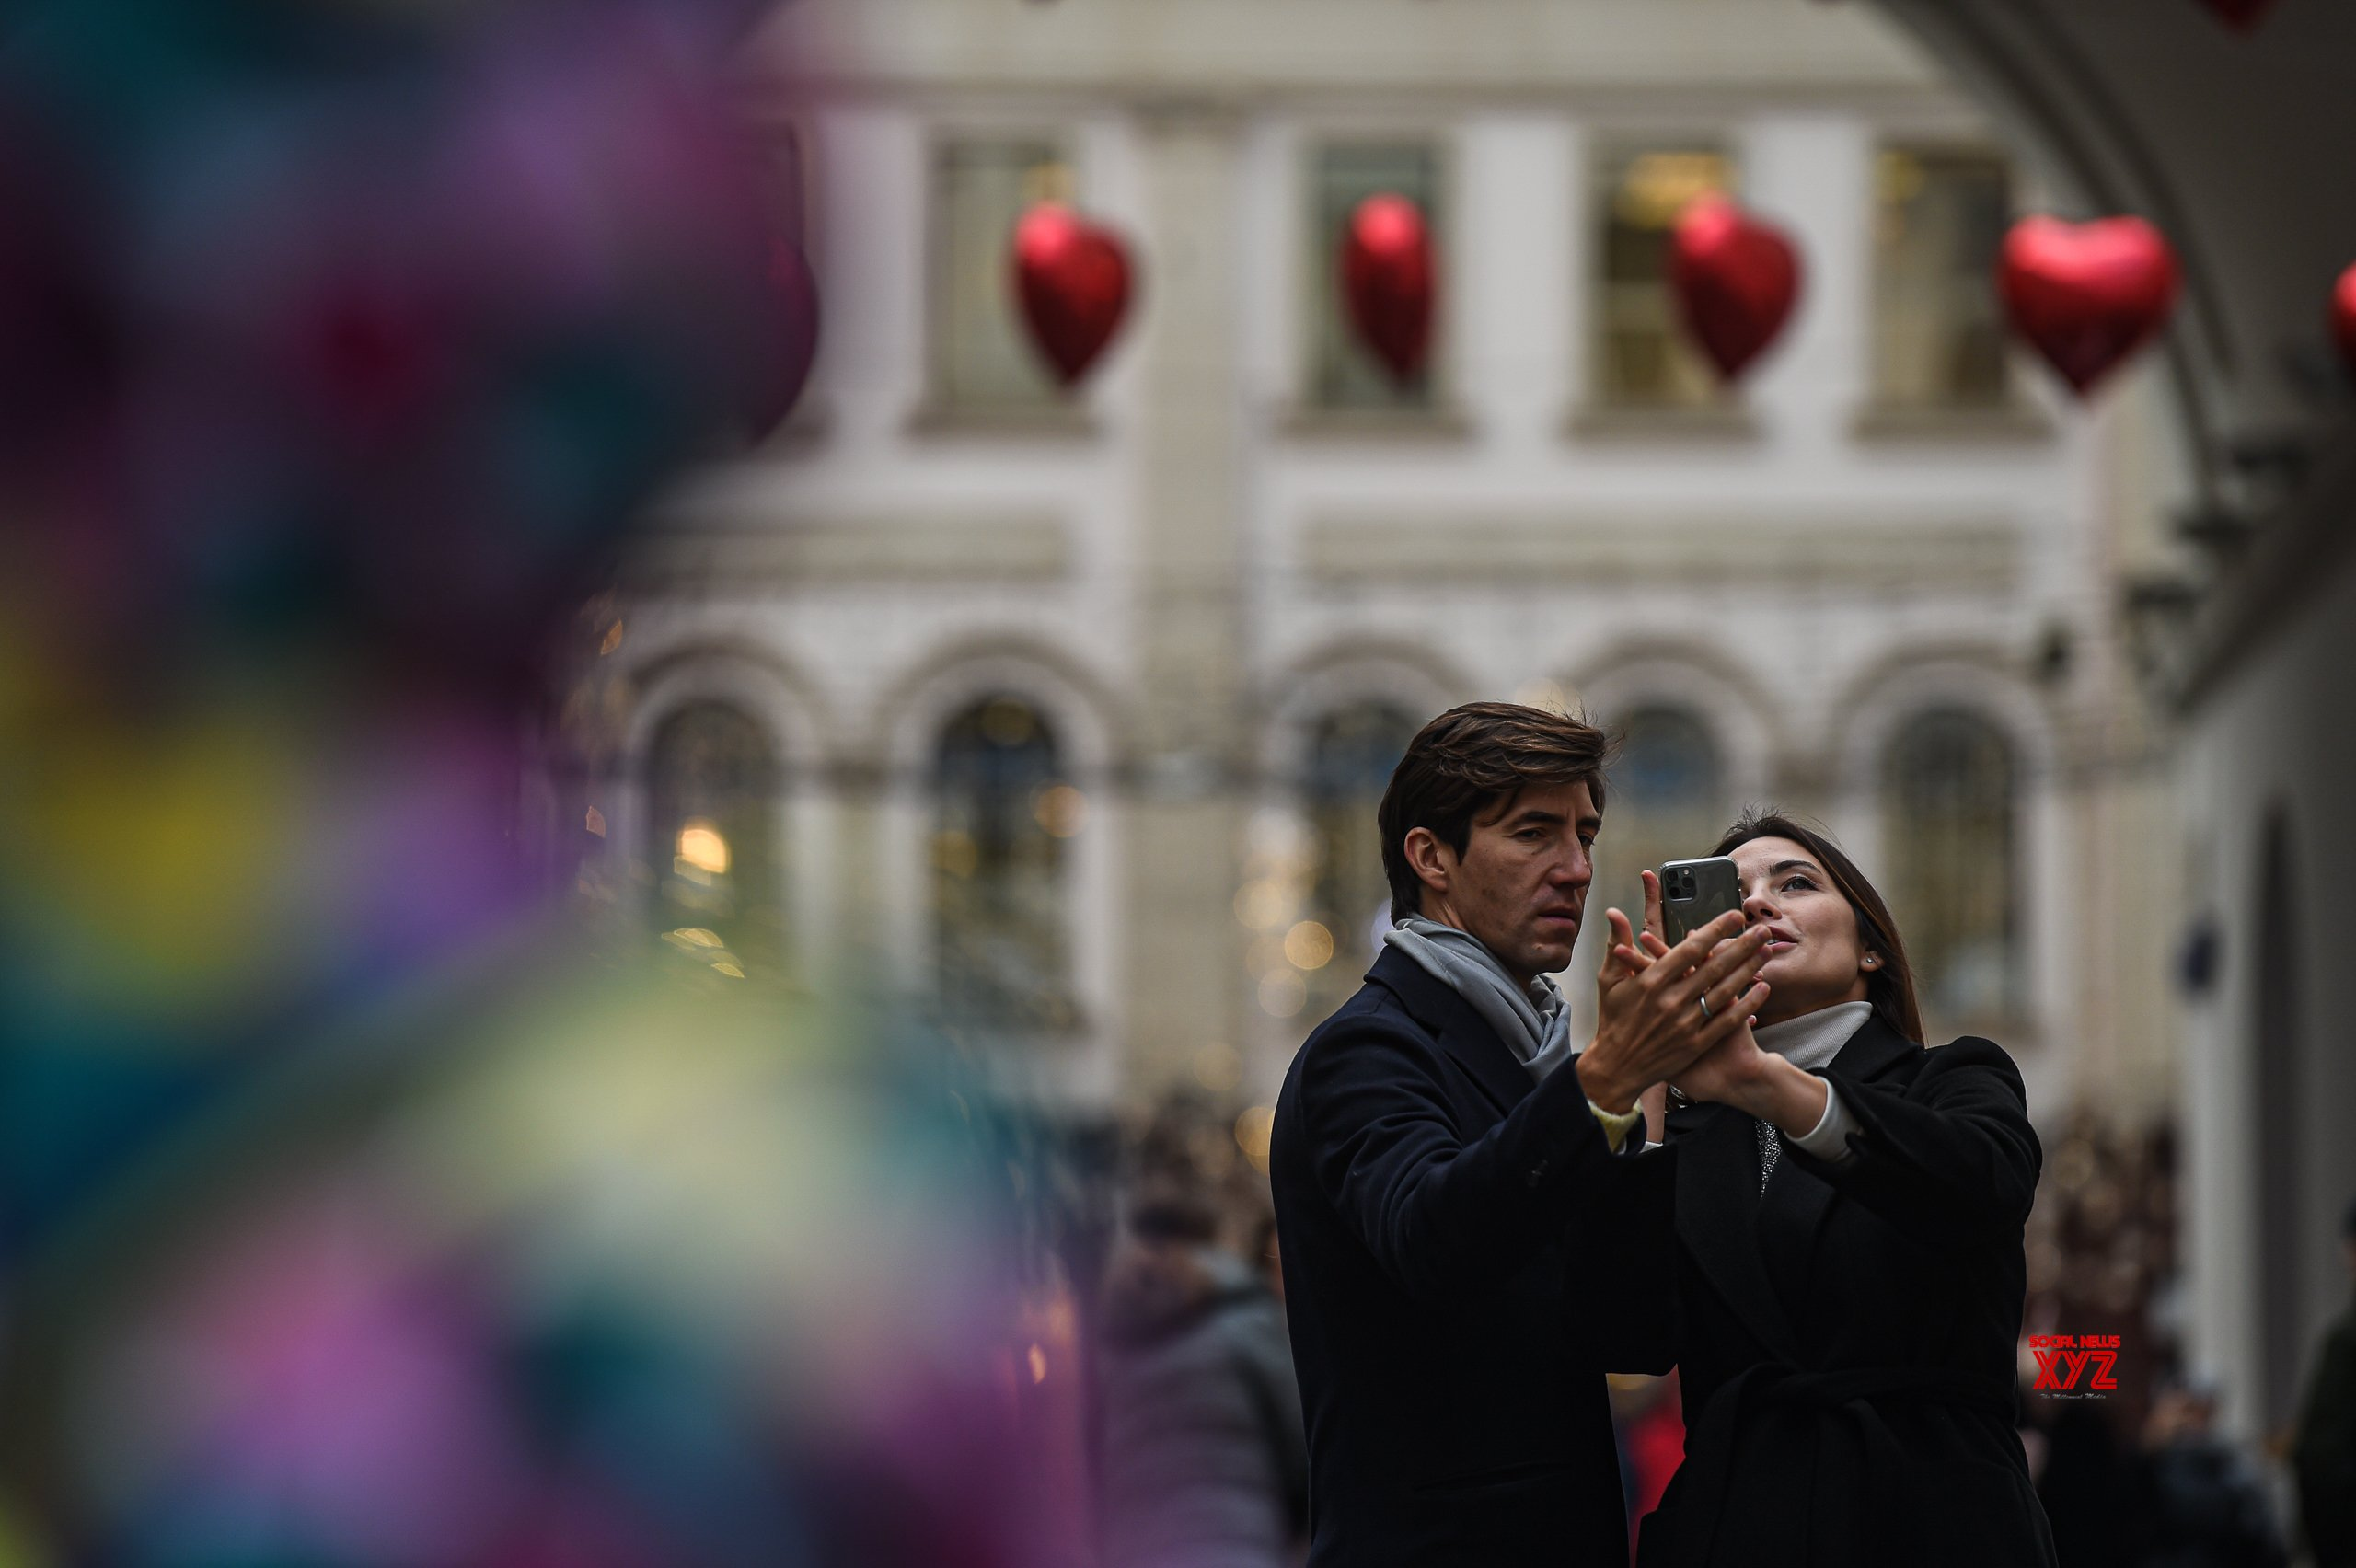 RUSSIA - MOSCOW - VALENTINE'S DAY #Gallery